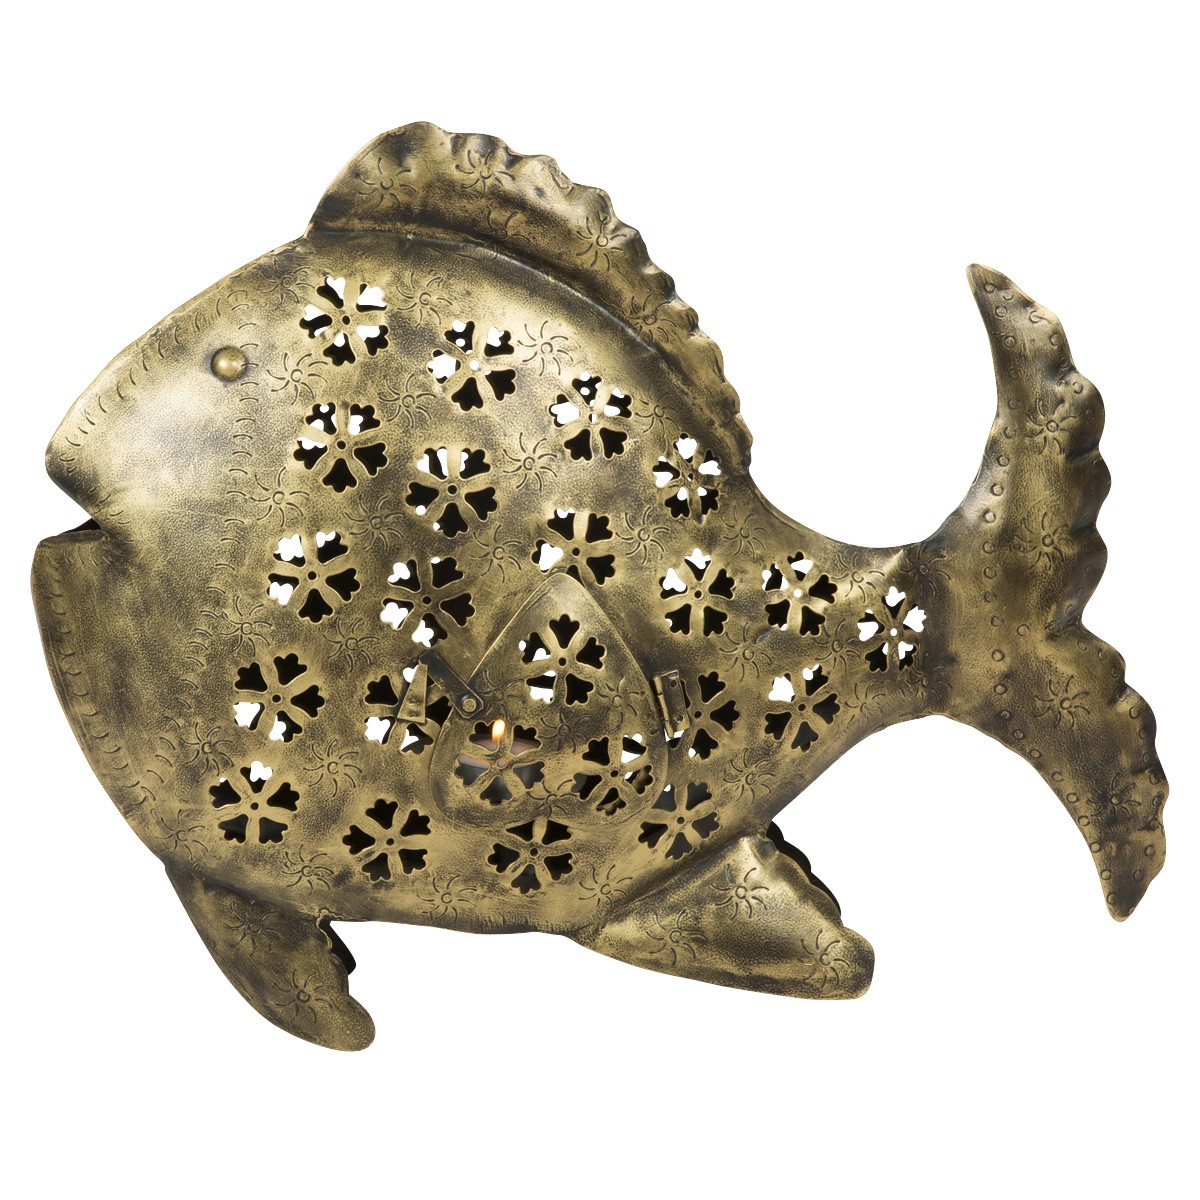 Azzedine Painted Cutout Iron Fish Tealight Holder, Antique Brass